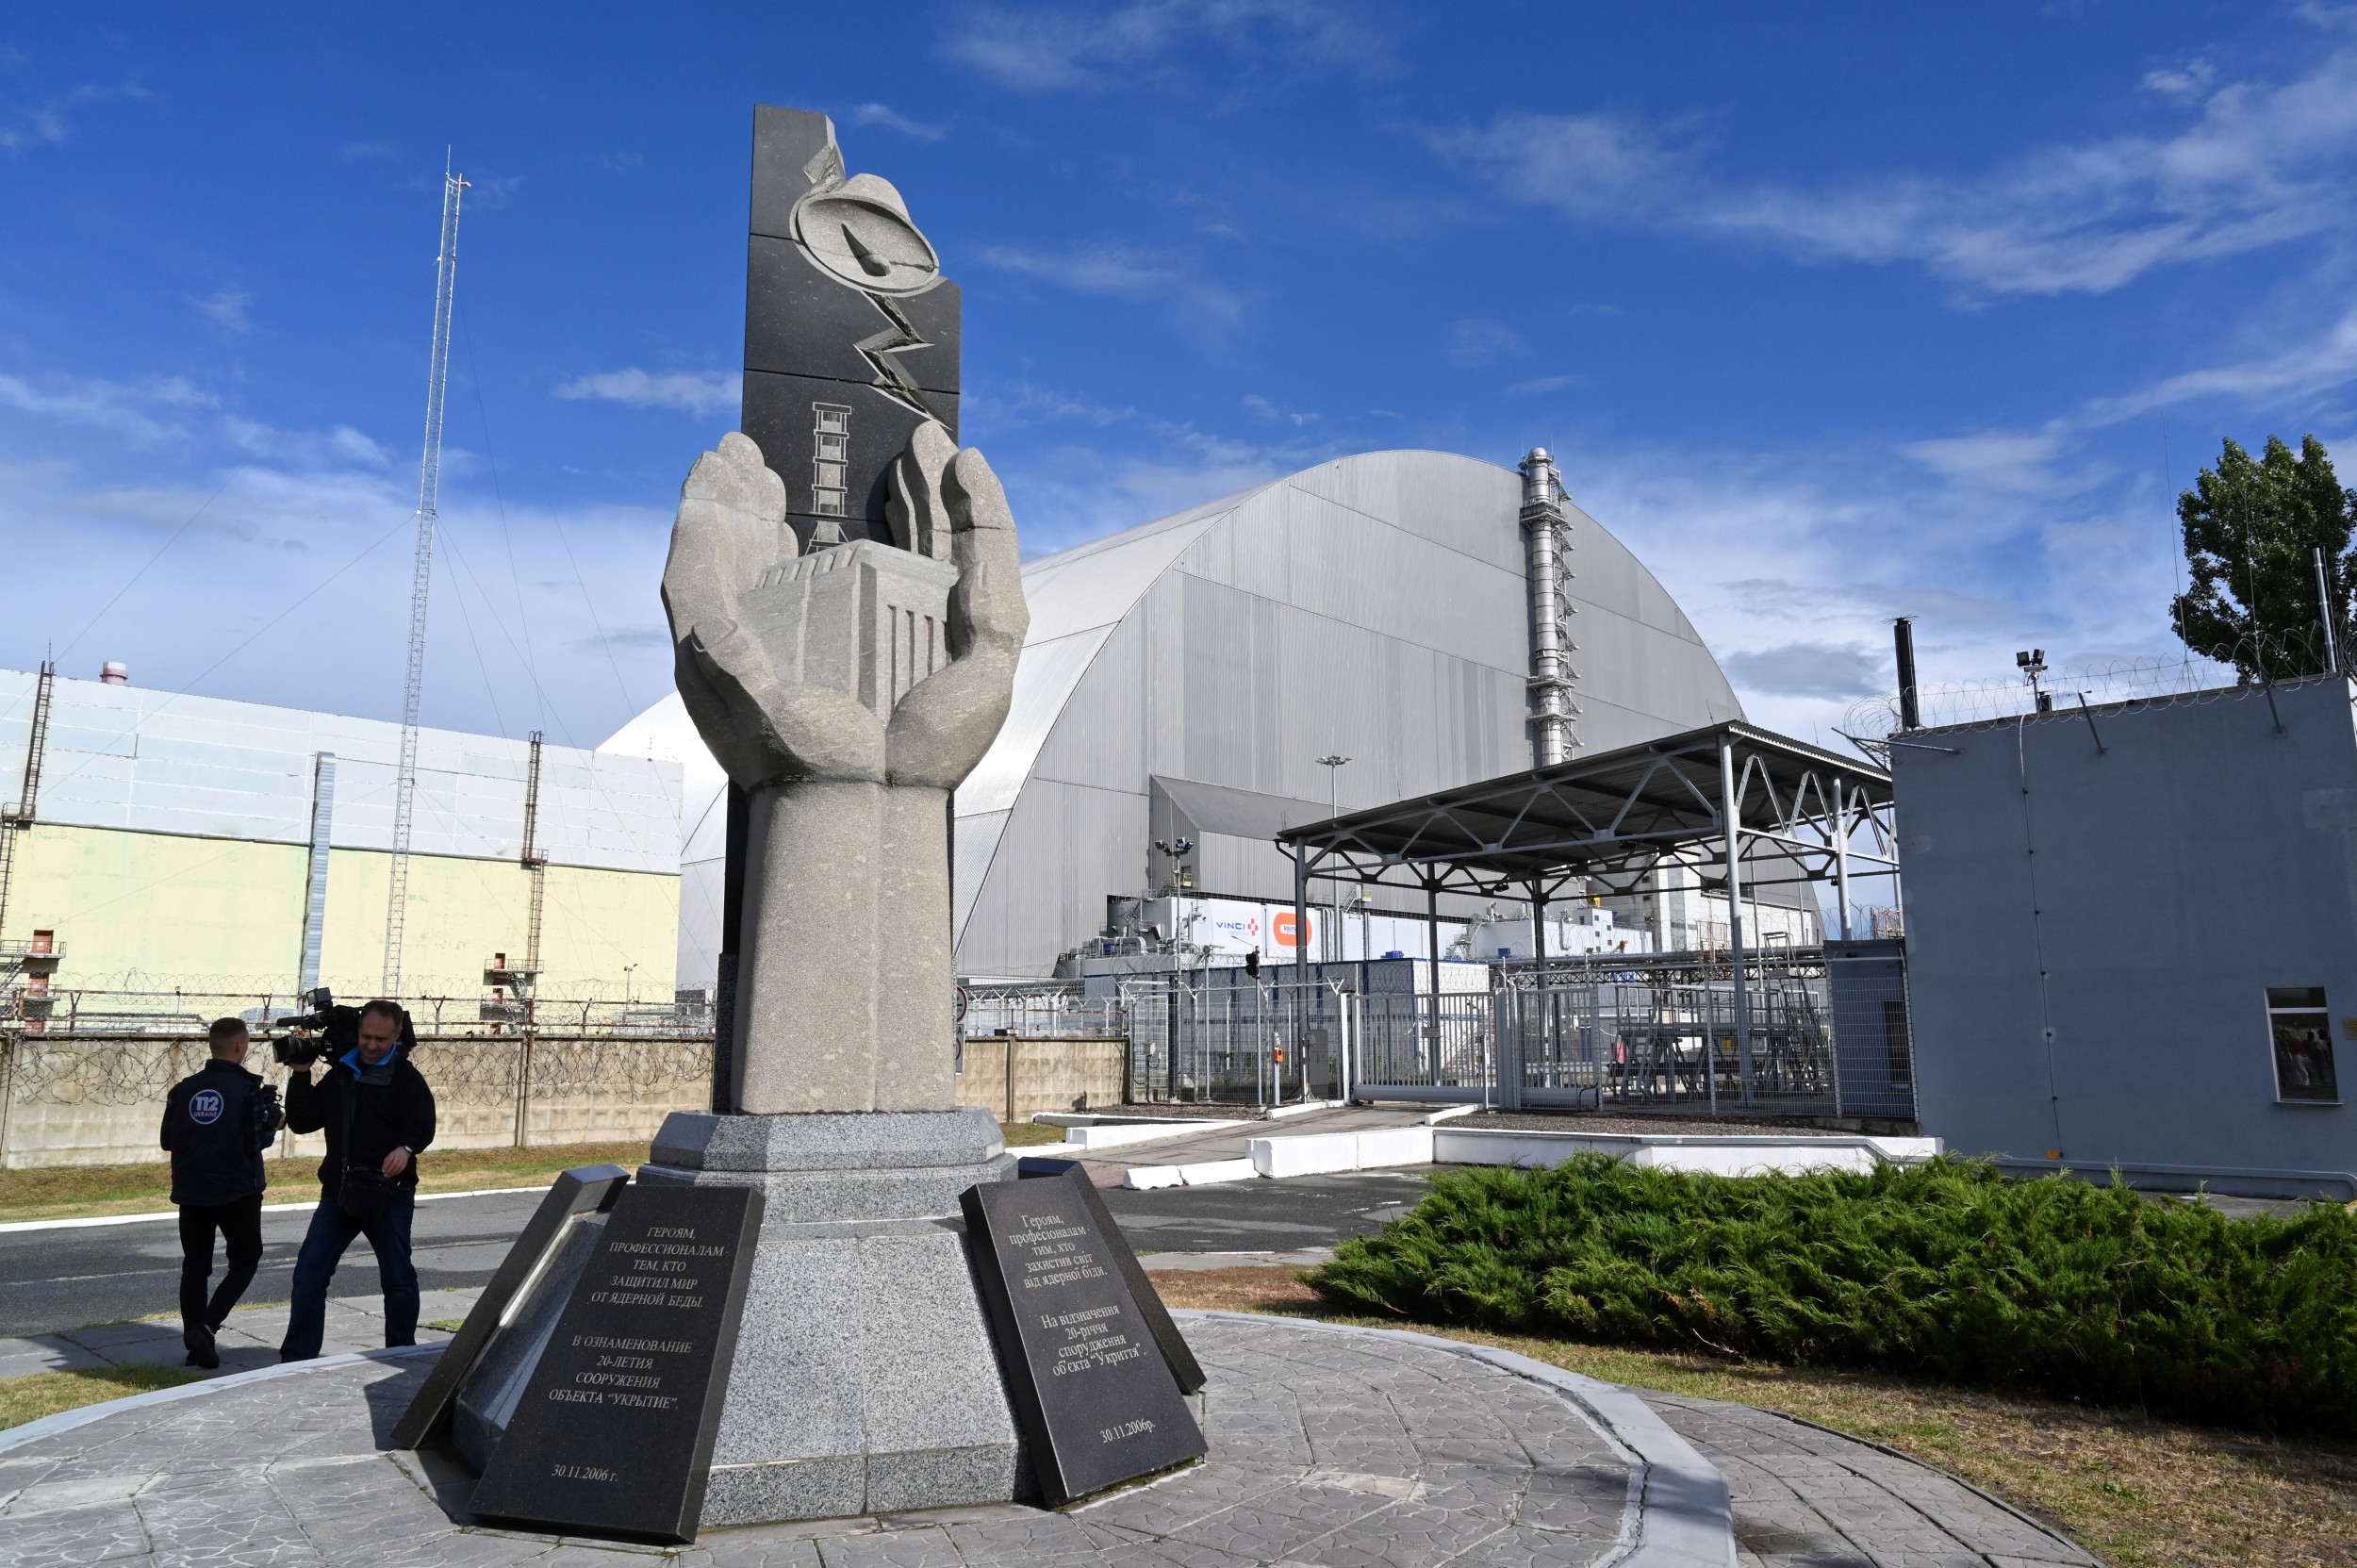 Chernobyl 'Sarcophagus' That Holds in Radiation From the